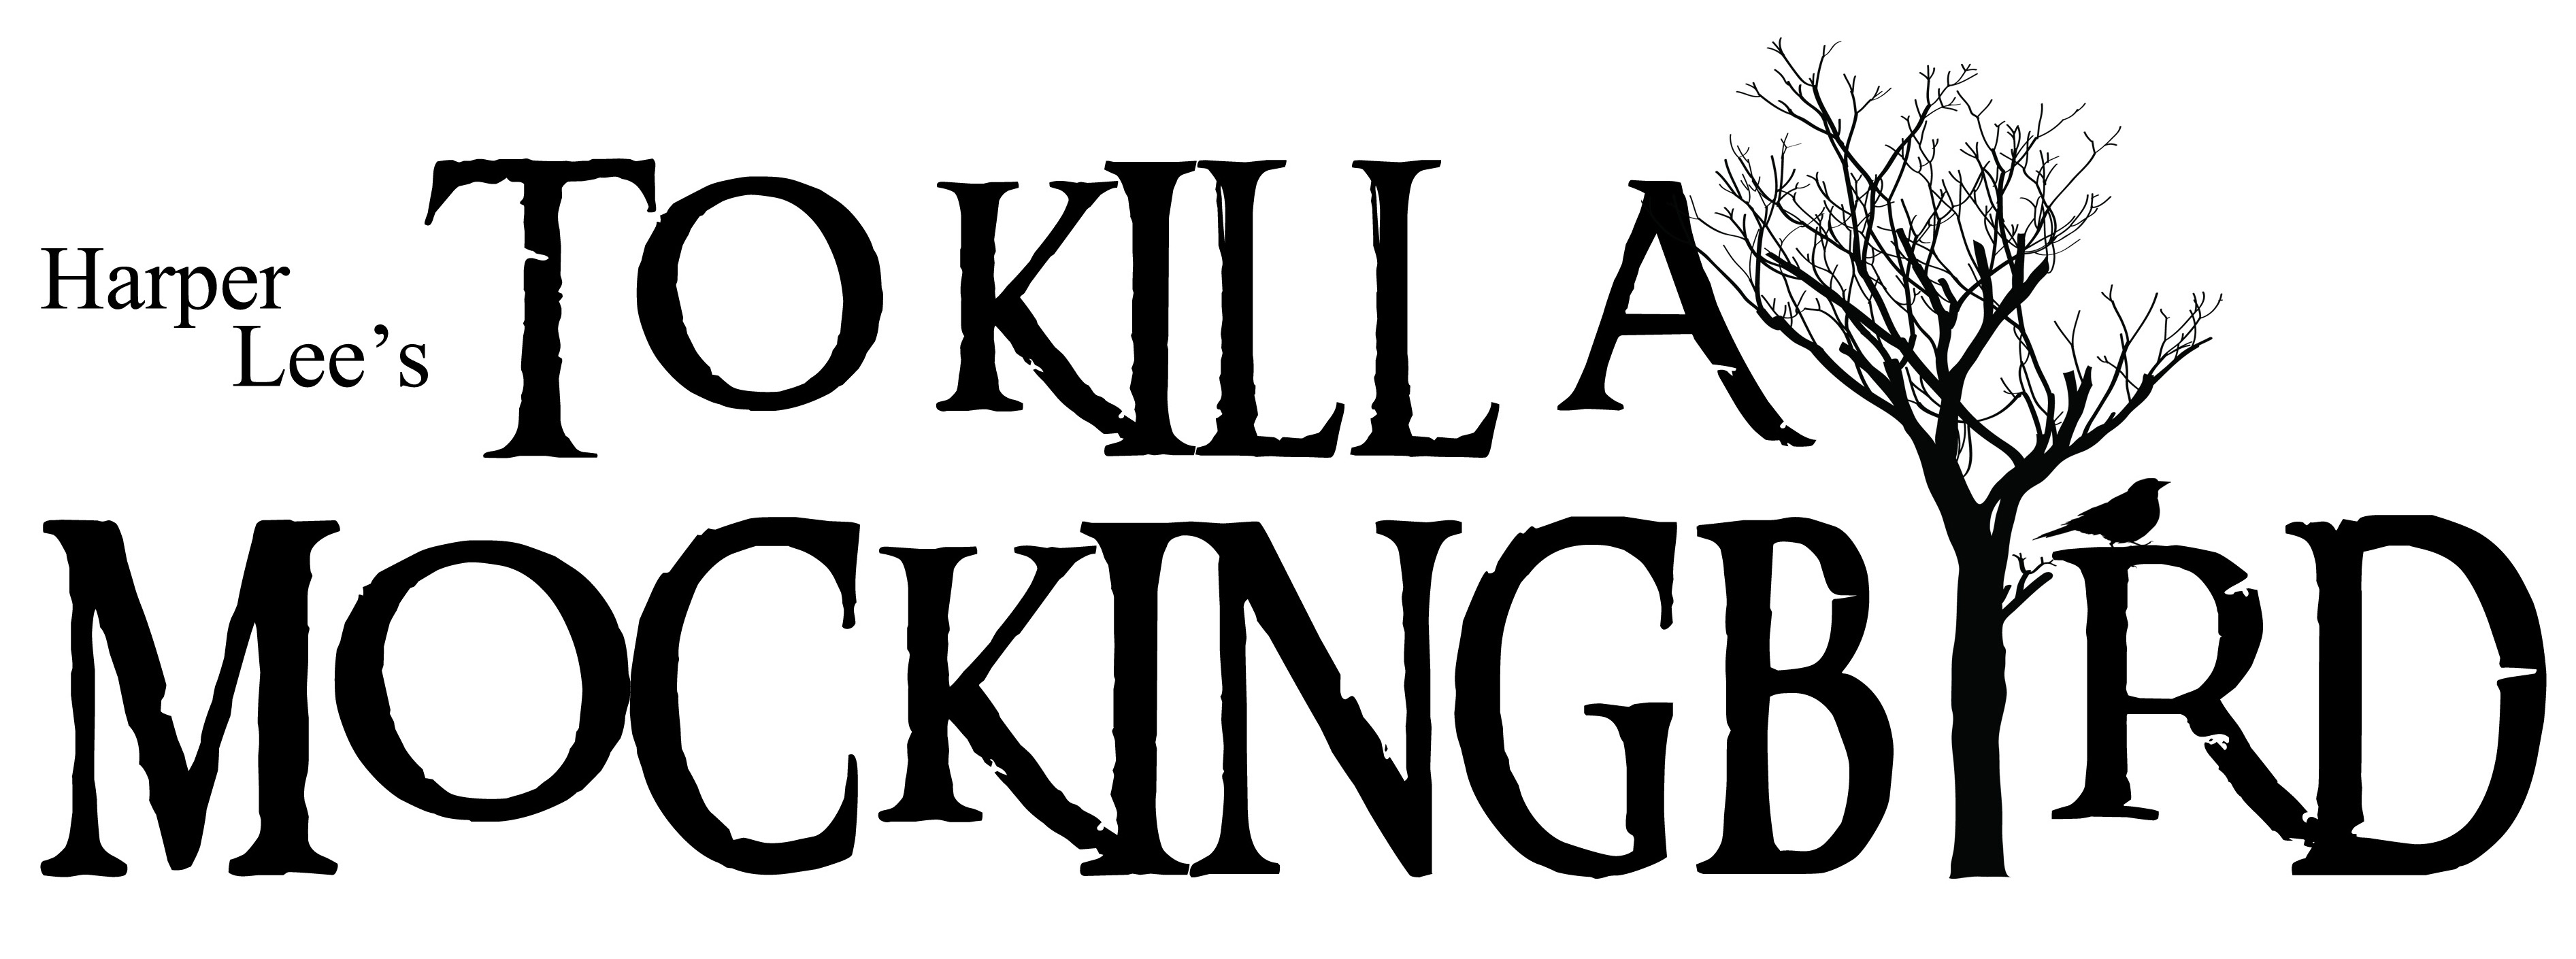 To-Kill-A-Mockingbird-working-copy-copy.jpg